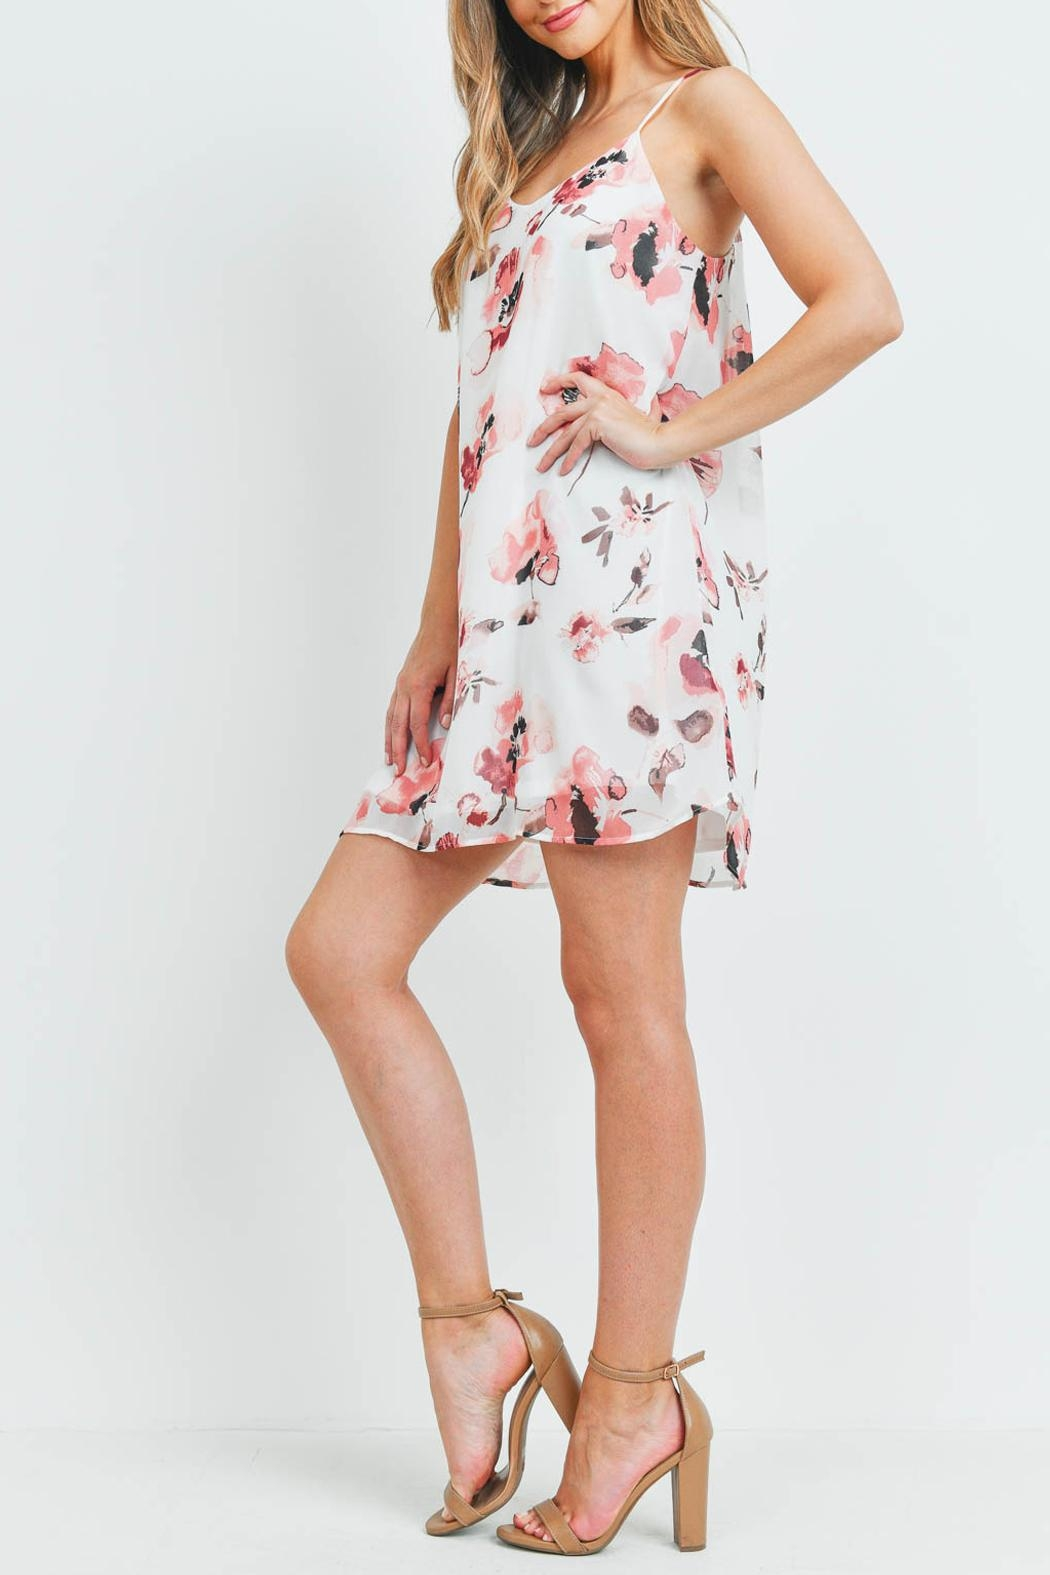 Riah Fashion Spaghetti-Straps-Floral-Print-Dress-With-Inside-Lining - Back Cropped Image